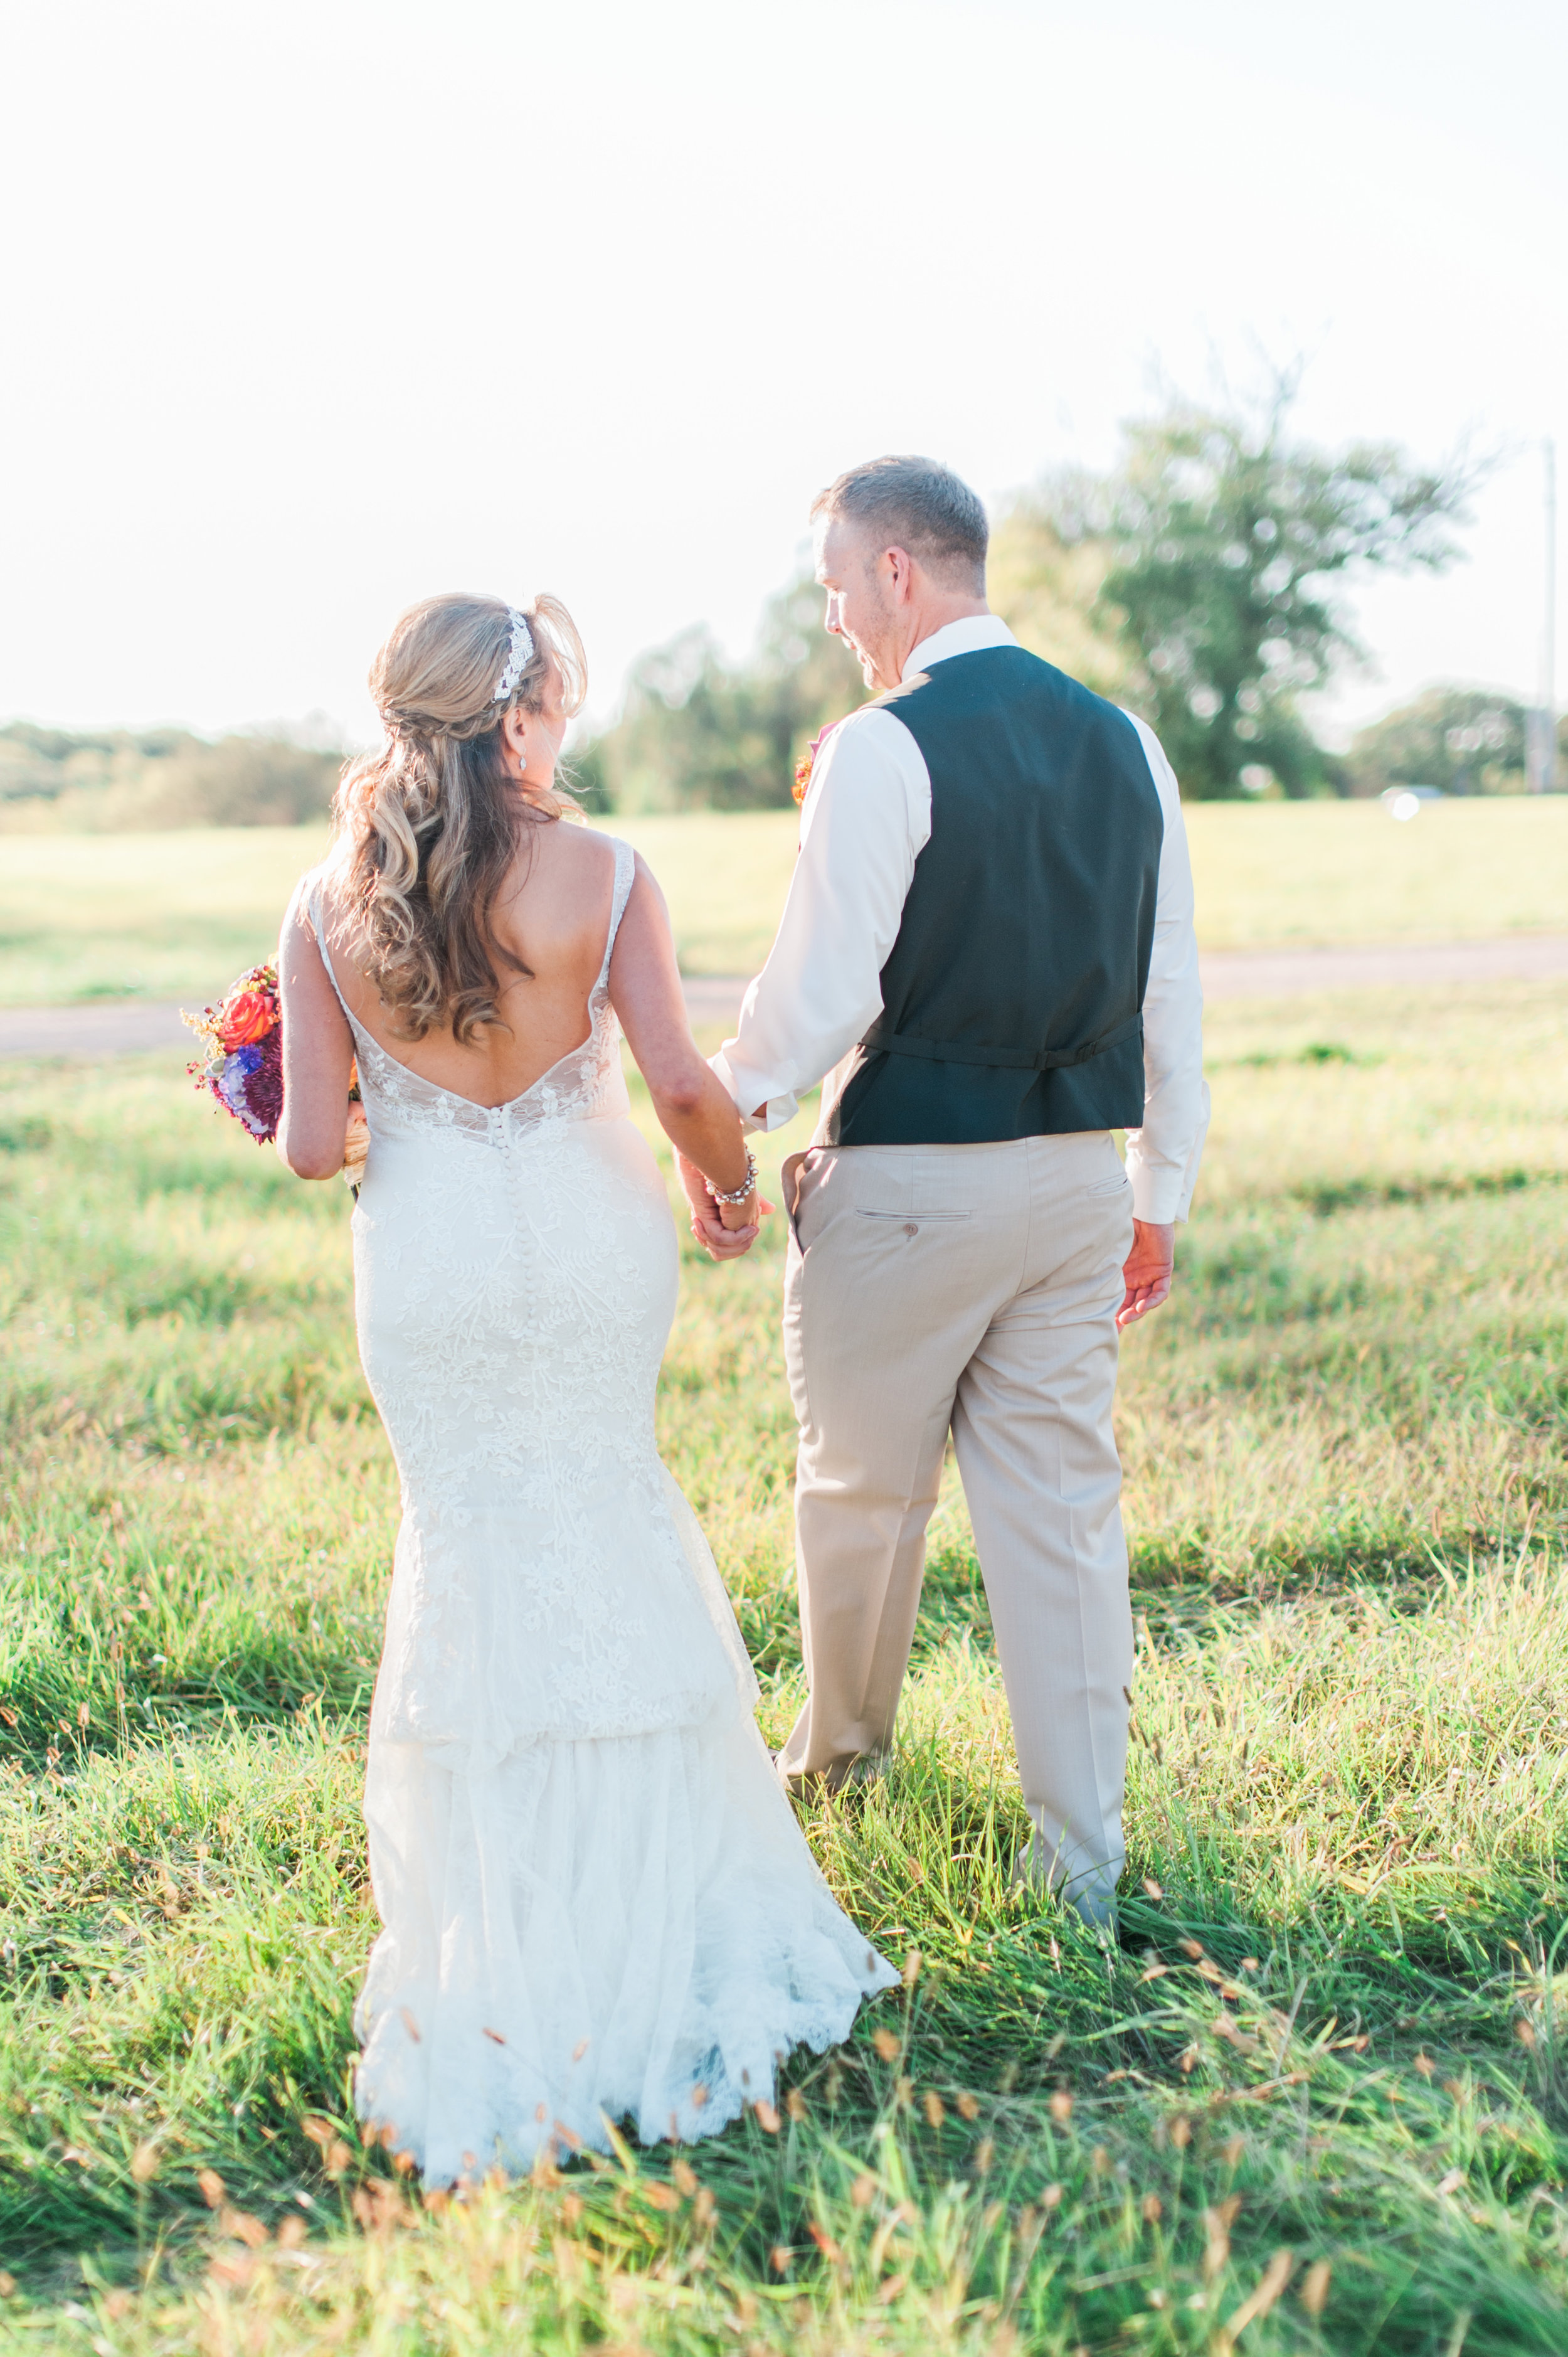 A photograph of a bride and groom by Samantha Weddings. The bride and groom are enjoying a walk in a field at the wedding venue Elk City hall in Omaha Nebraska.